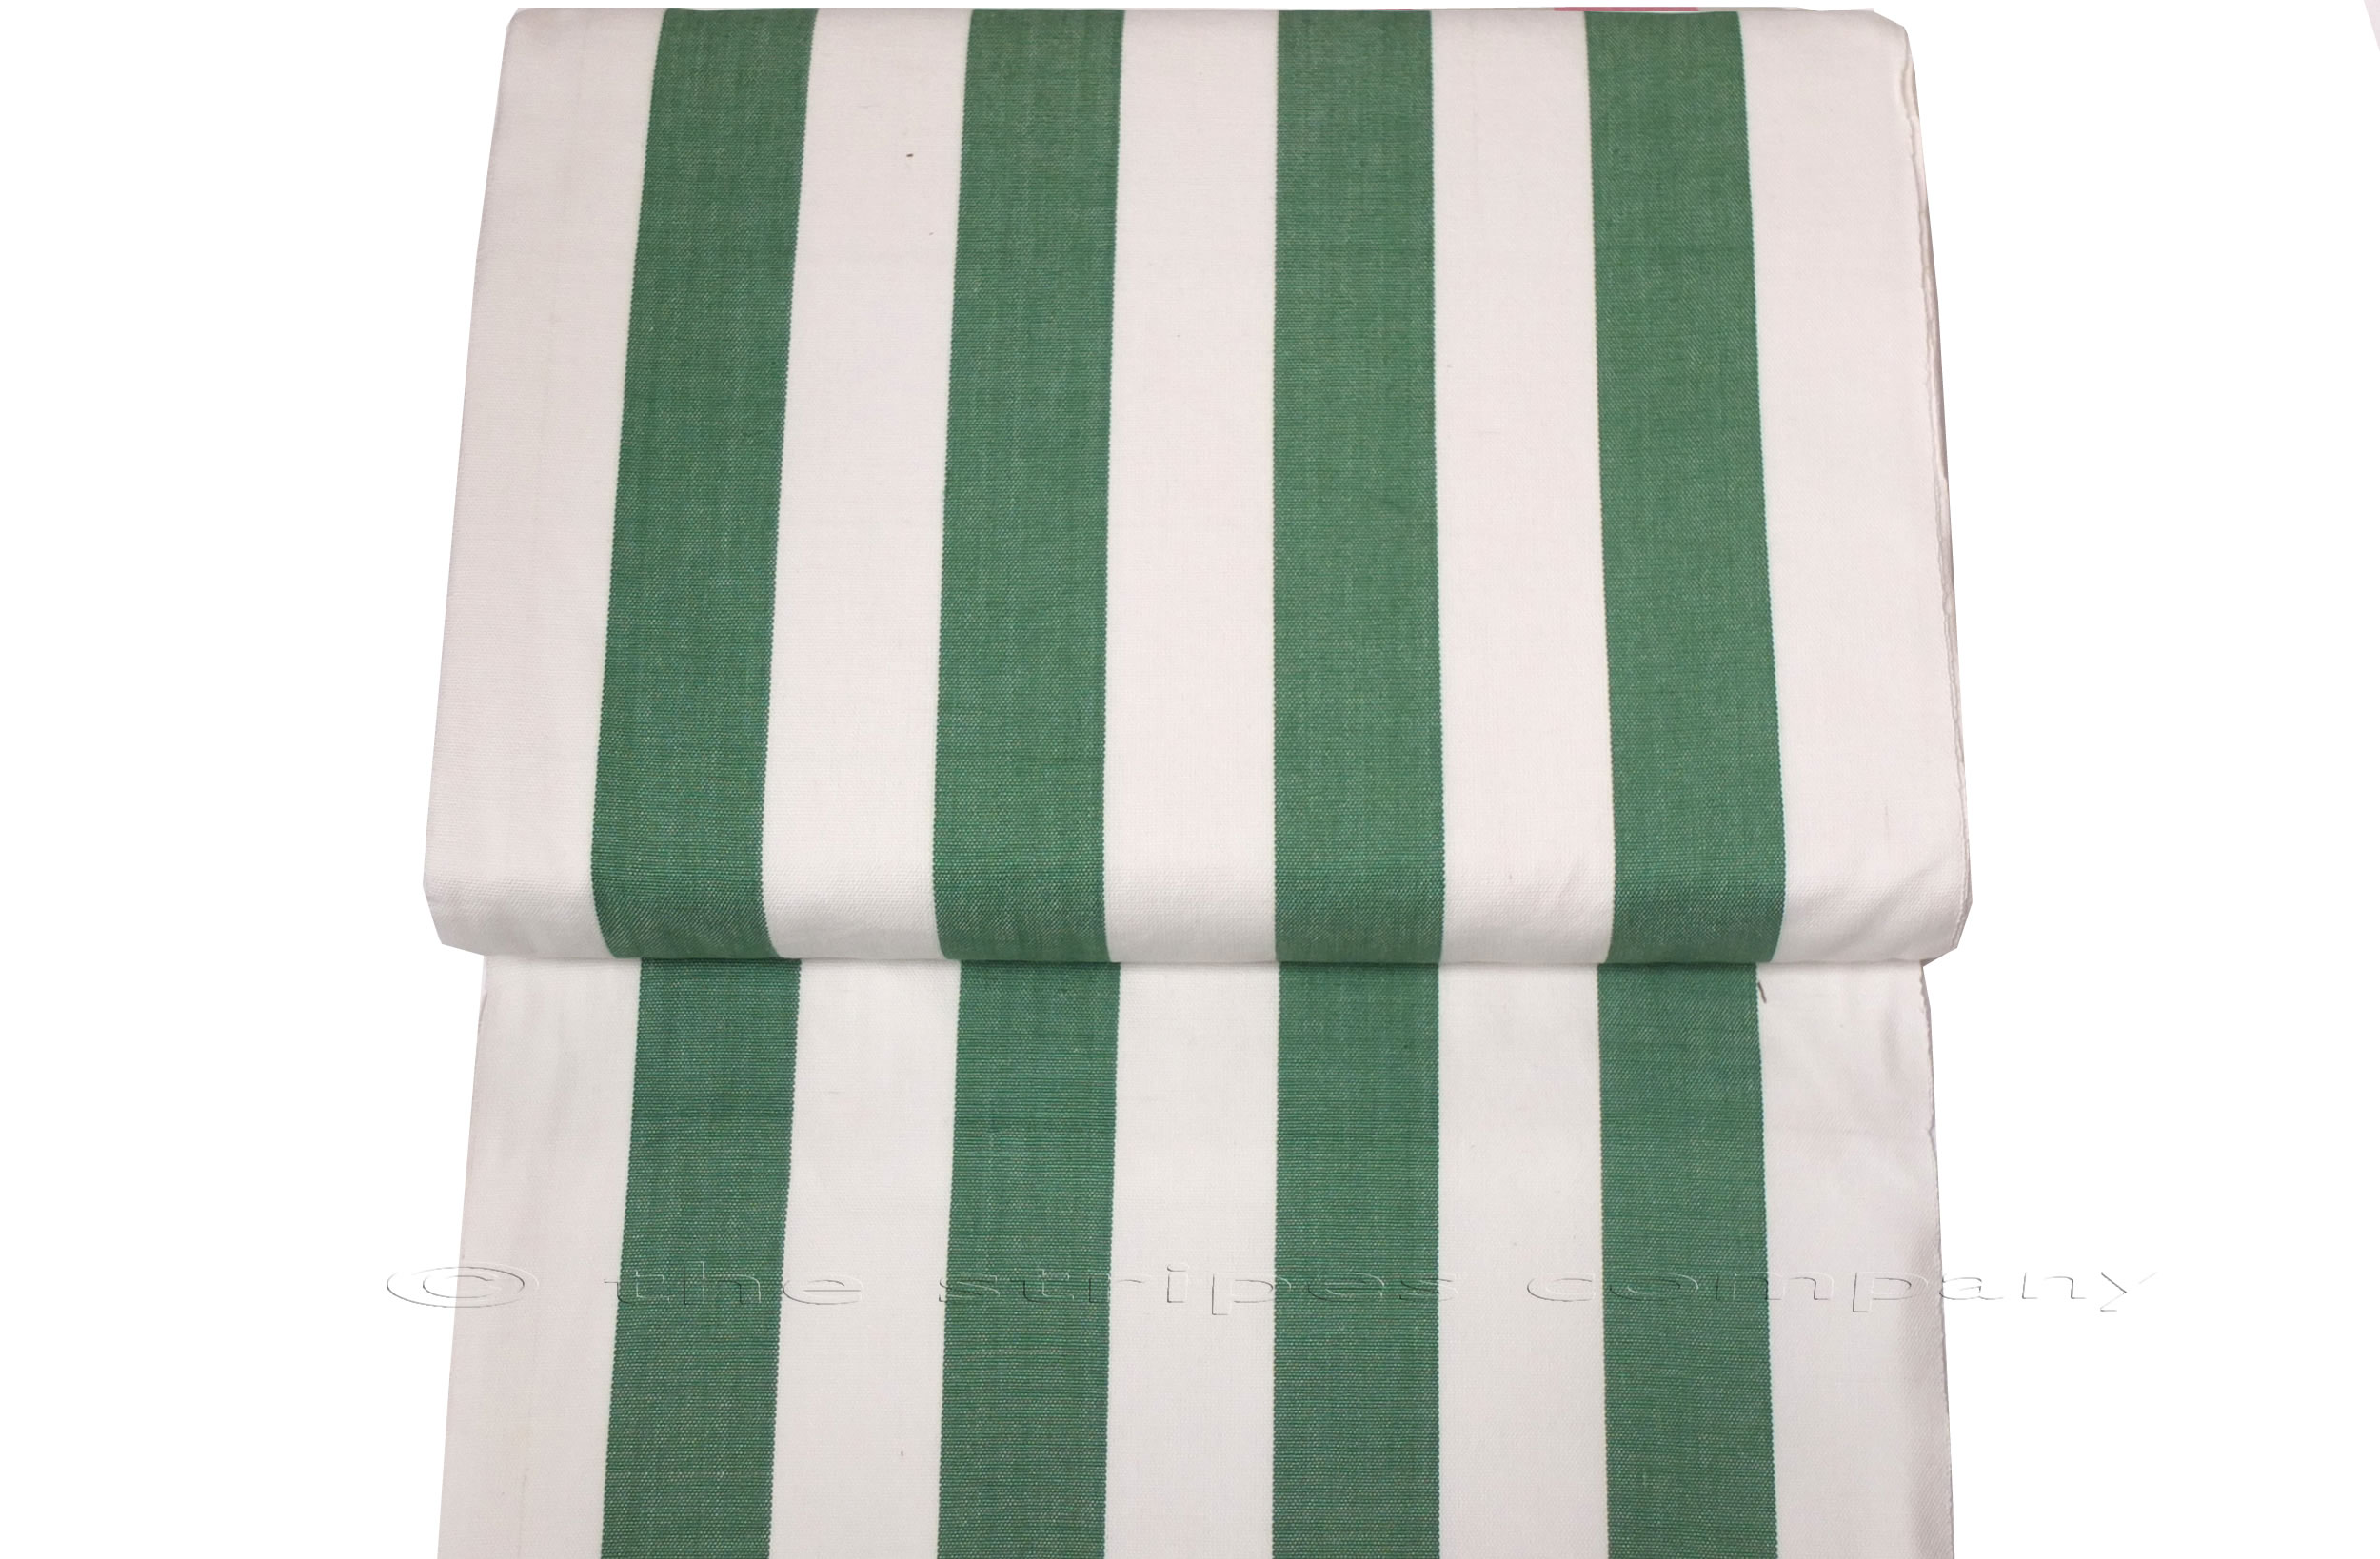 Green And White Clic Striped Deckchair Canvas Fabric Thick Weave